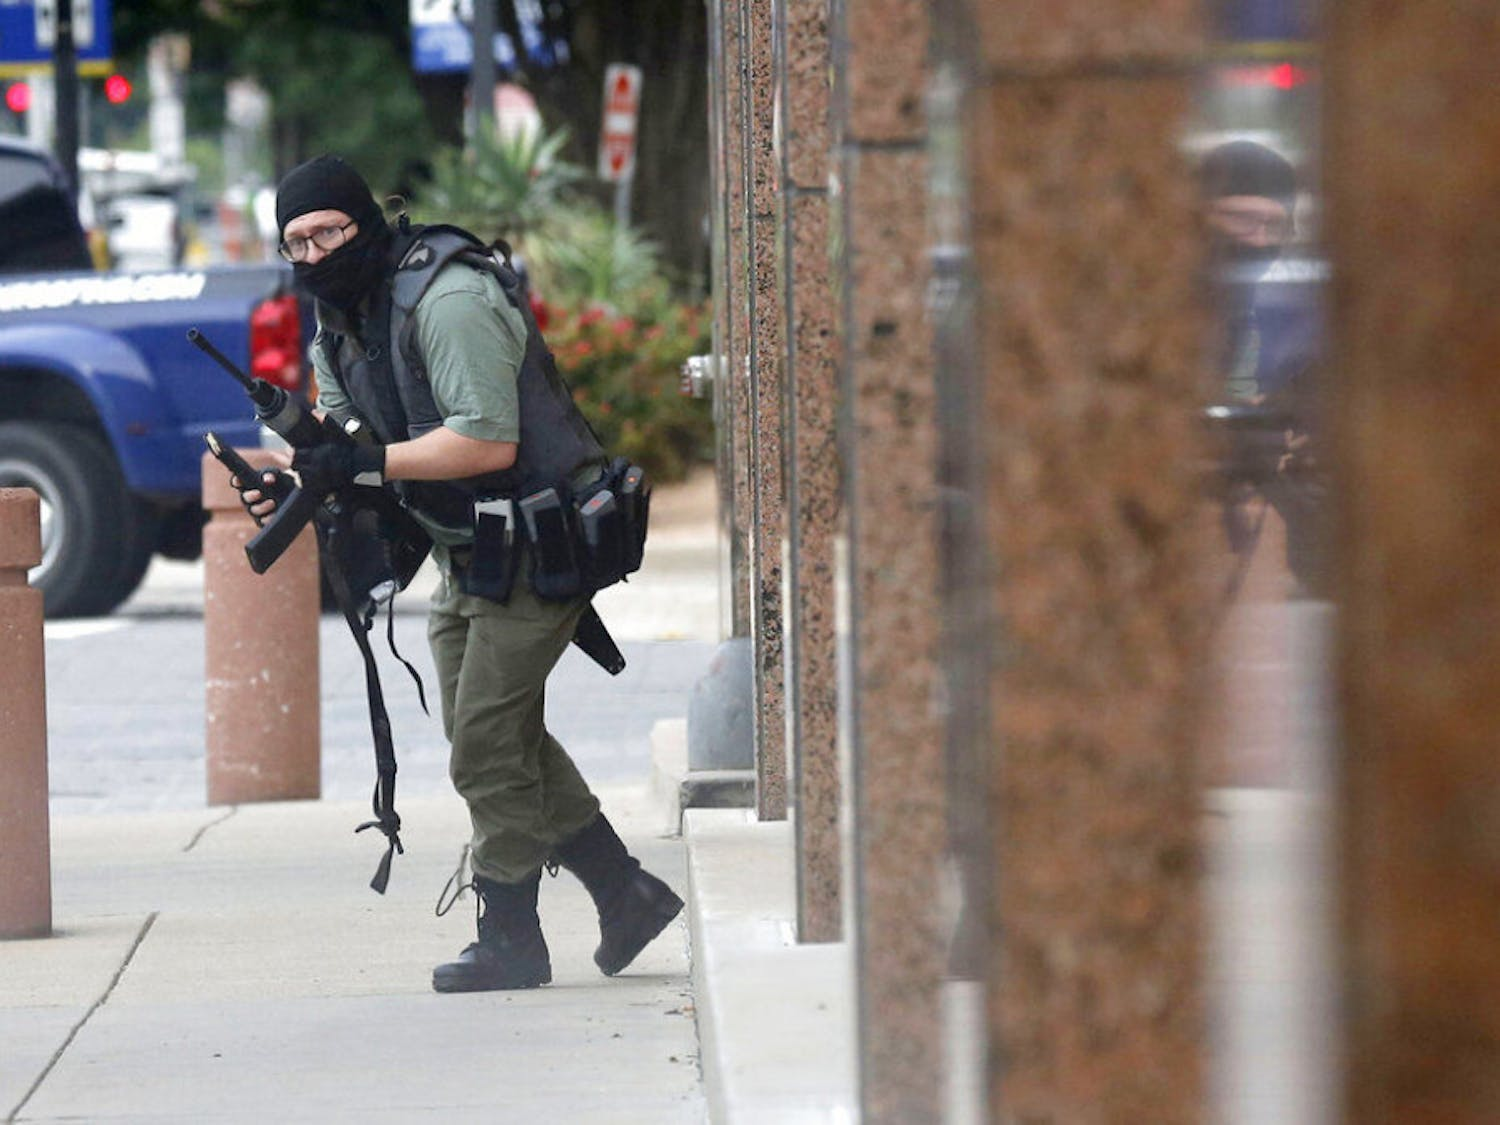 An armed shooter stands near the Earle Cabell Federal Building Monday, June 17, 2019, in downtown Dallas. The shooter was hit and injured in an exchange of gunfire with federal officers outside the courthouse.